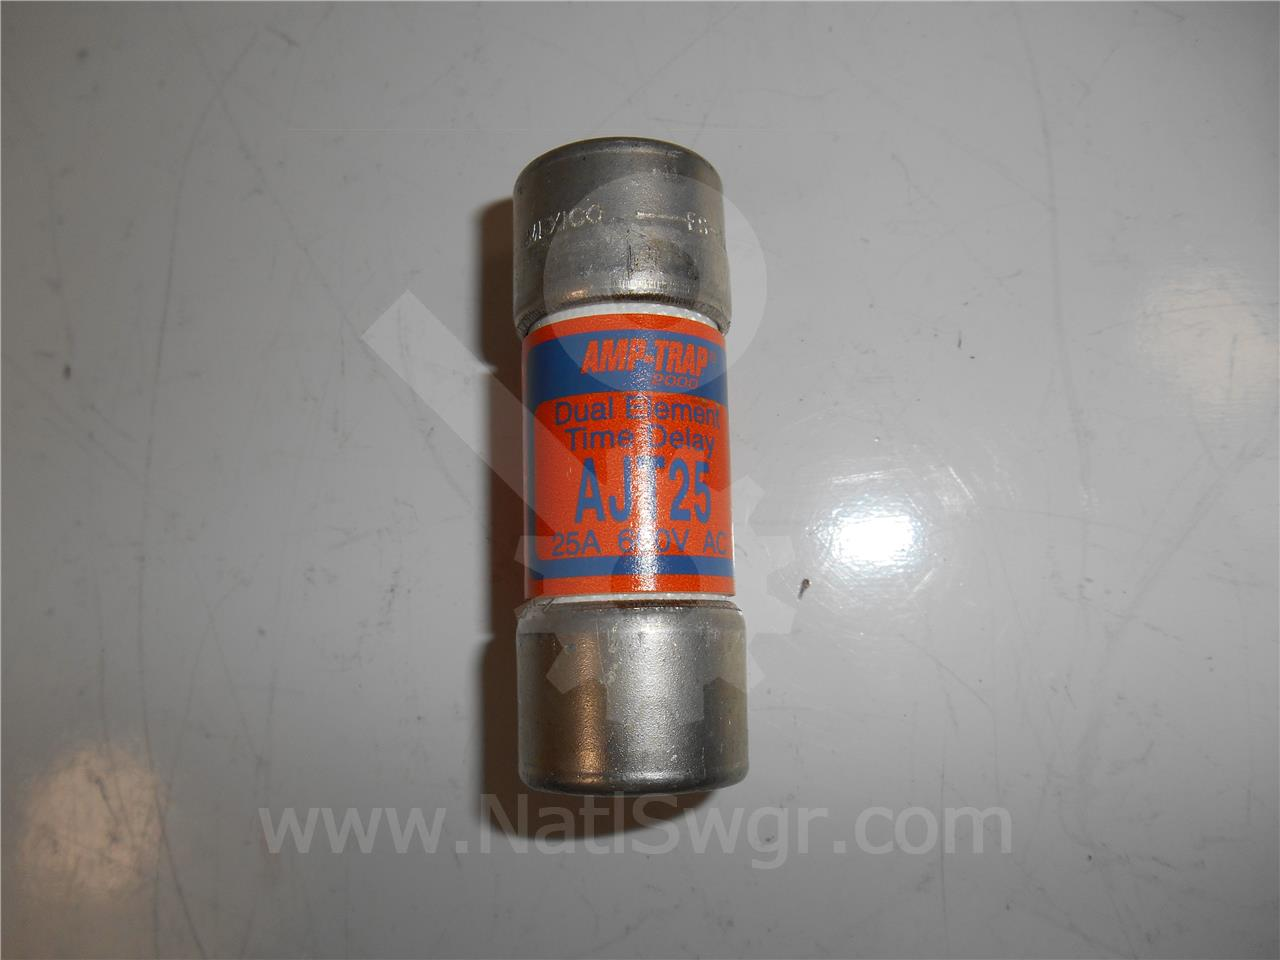 AMP-TRAP 25A AMP-TRAP CURRENT LIMITING FUSE